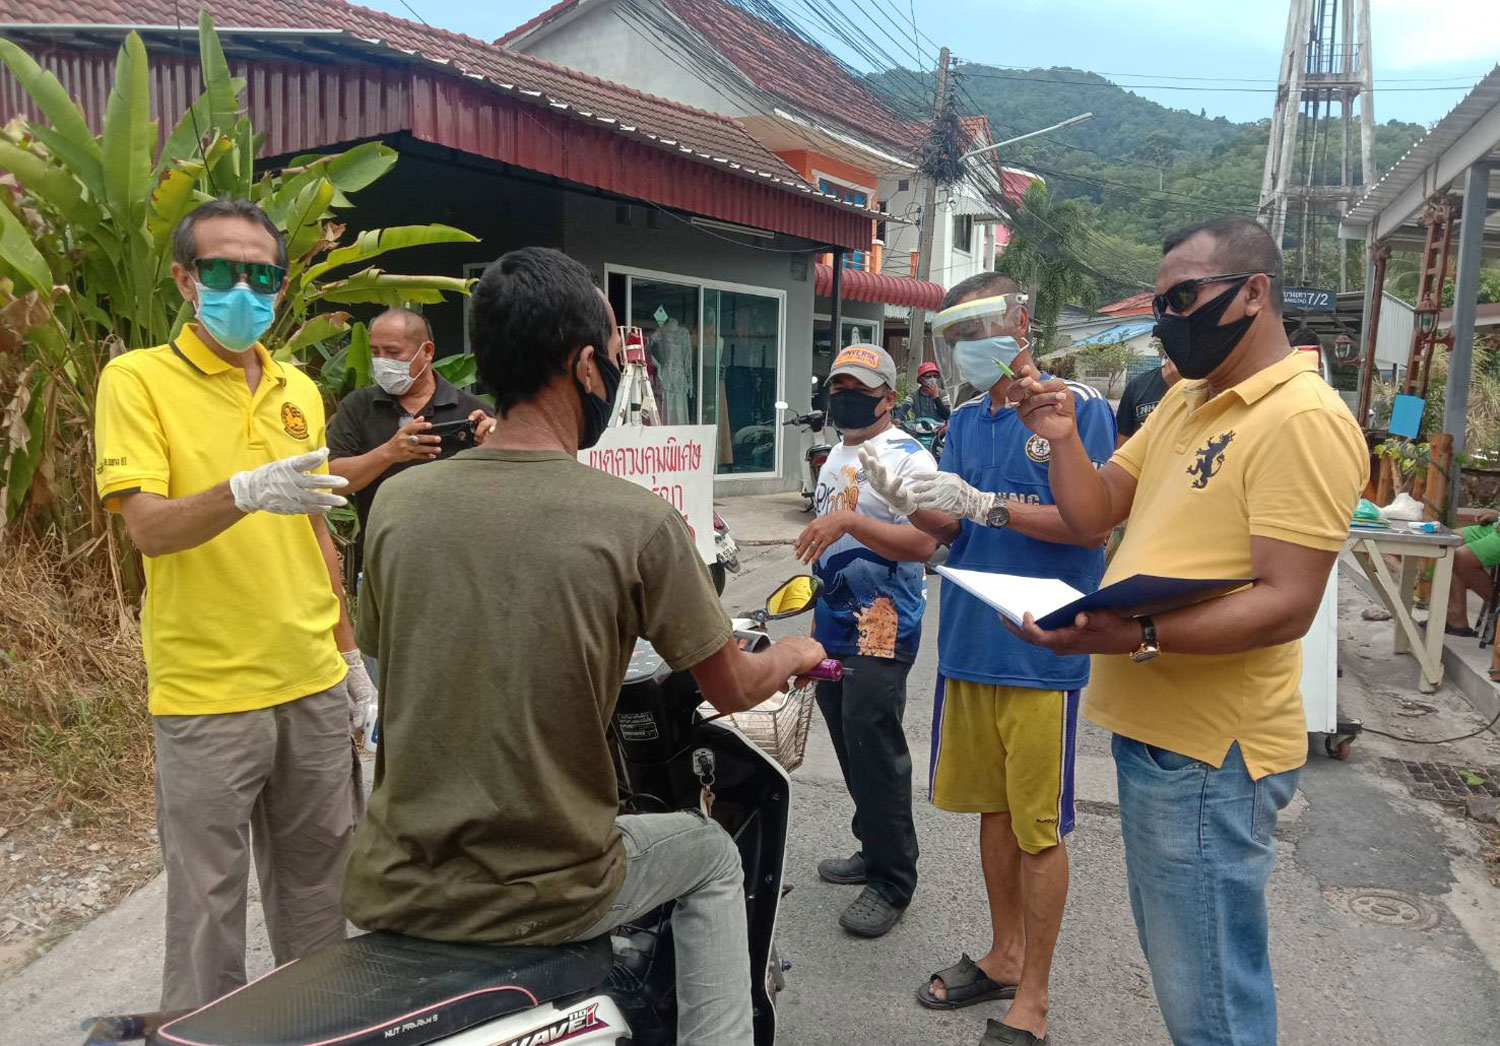 Officials and volunteers manning a screening checkpoint in Phuket stops a motorcyclist wanting to pass the checkpoint for screening checks. (Photo by Achadtaya Chuenniran)